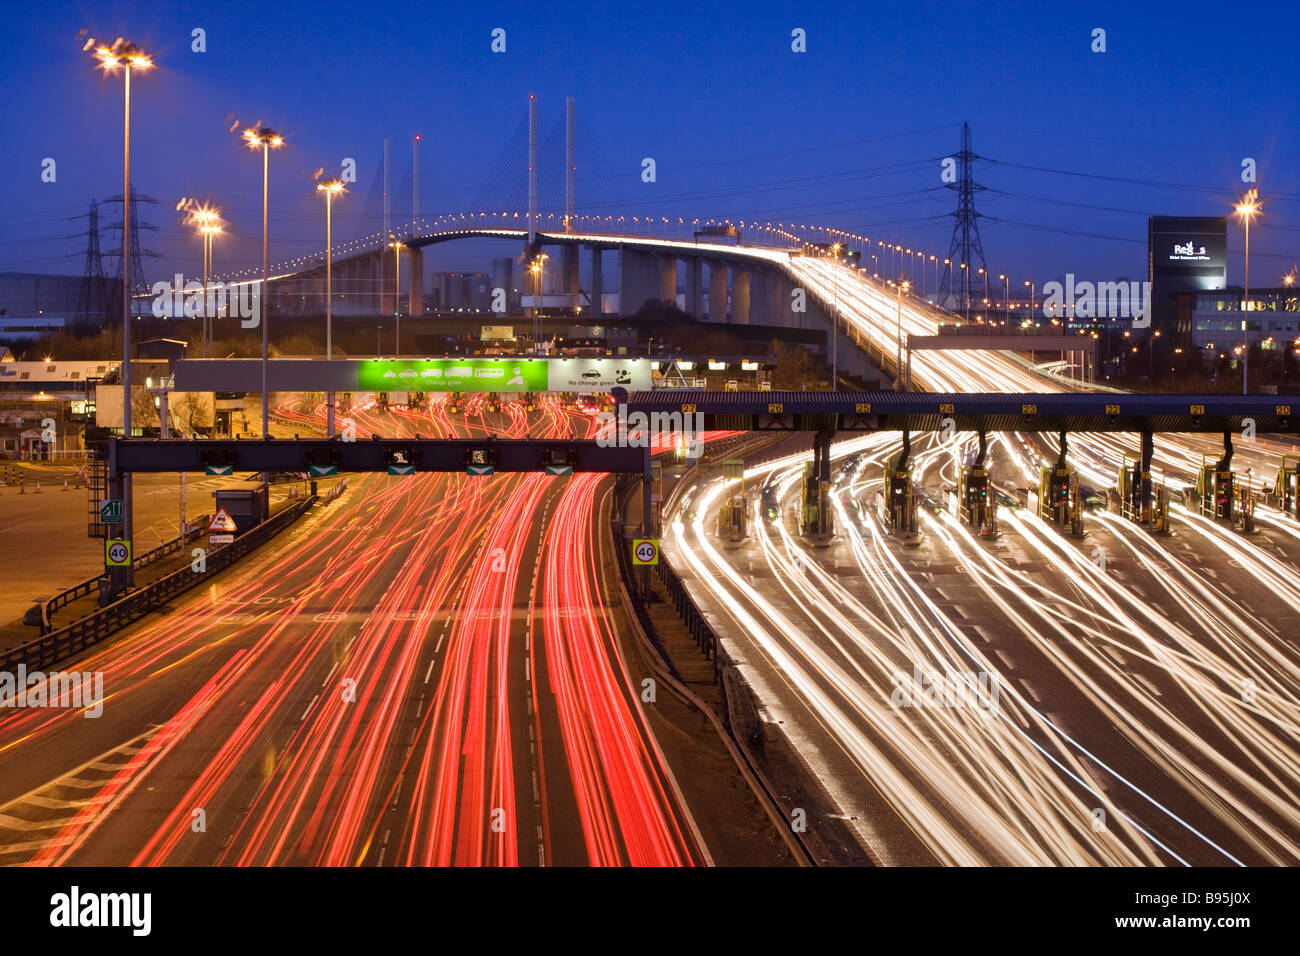 Traffic passing through toll booths at night. Queen Elizabeth II Bridge and Dartford Tunnel, Kent, UK - Stock Image